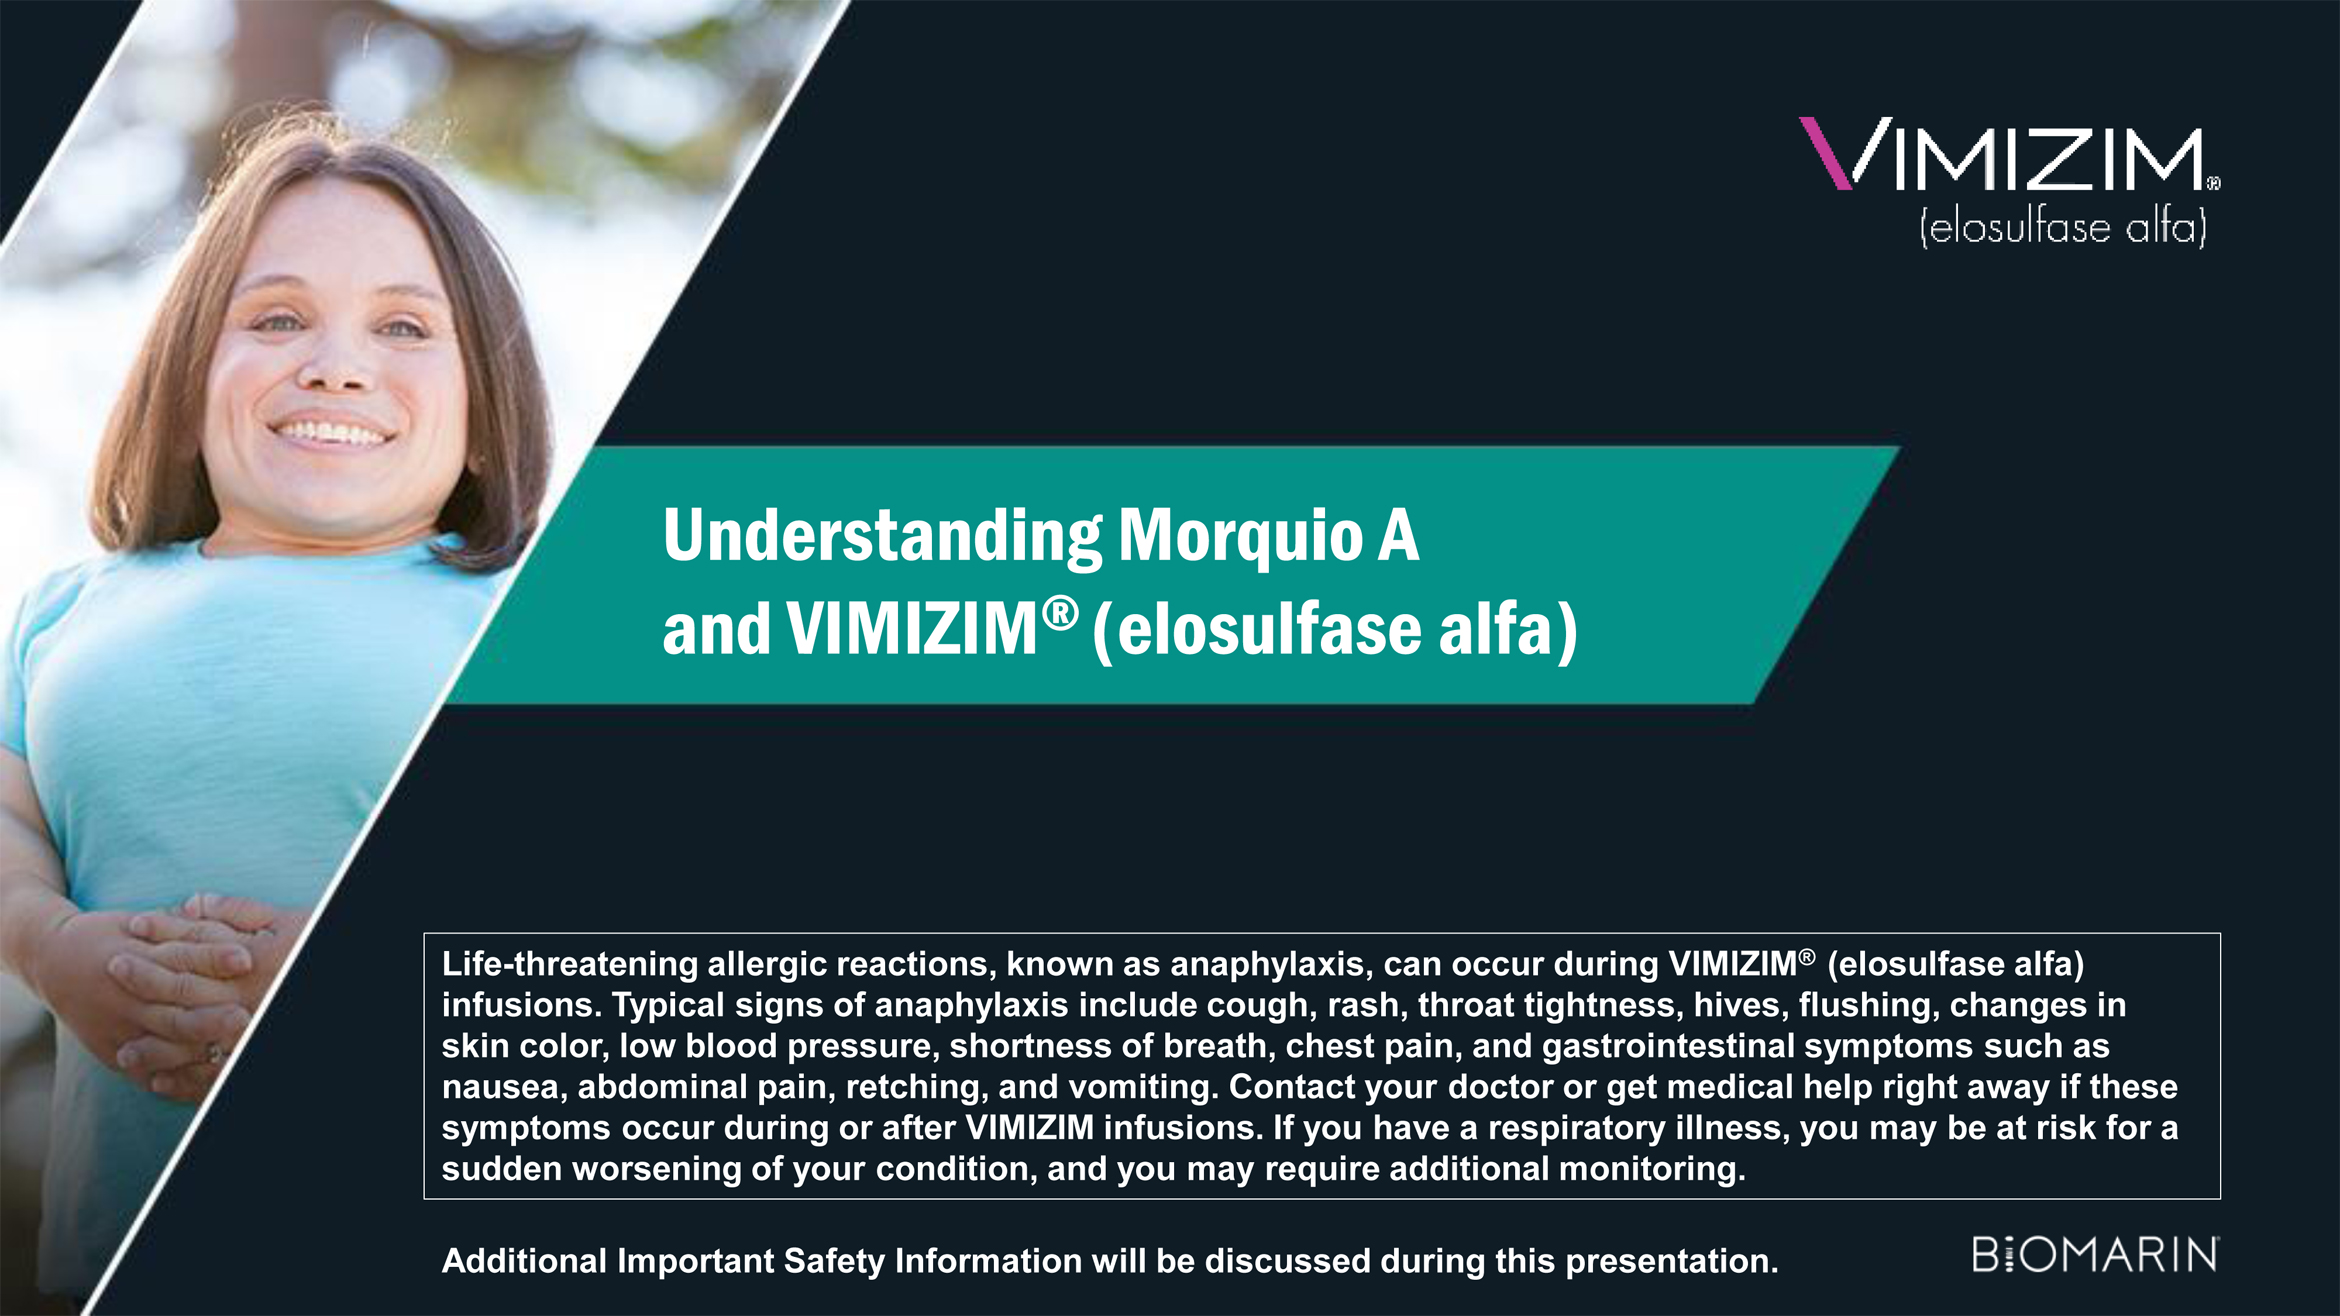 VIMIZIM® (elosulfase alfa) product fact sheet